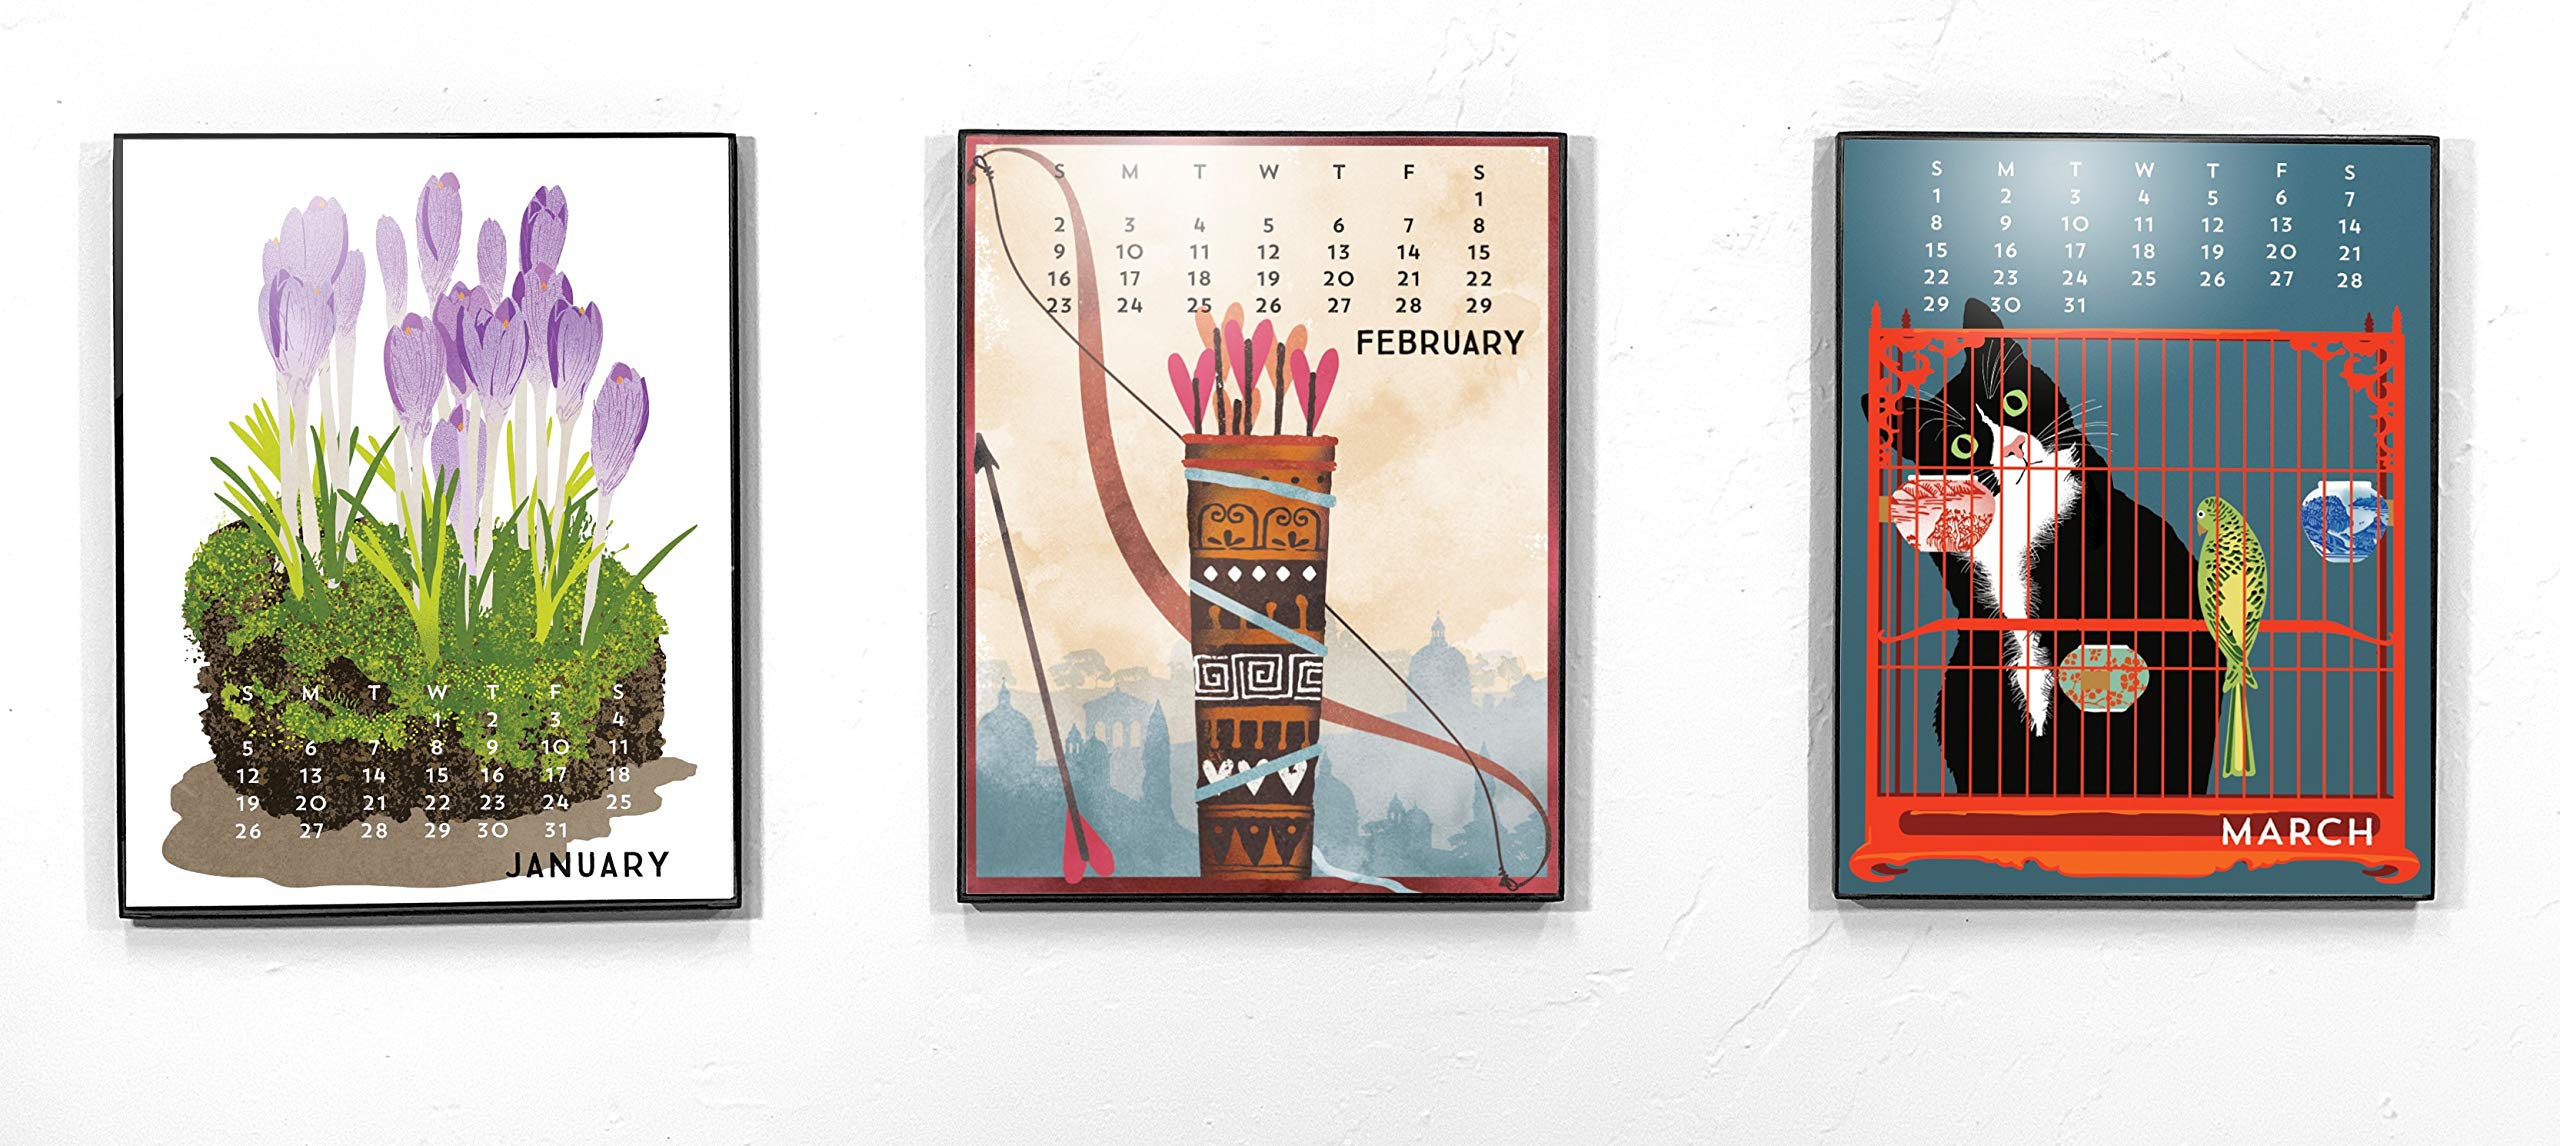 Linnea Design 2020 Poster Wall Calendar 11 X 14 Inches Art by Johanna Riley by Linnea Design